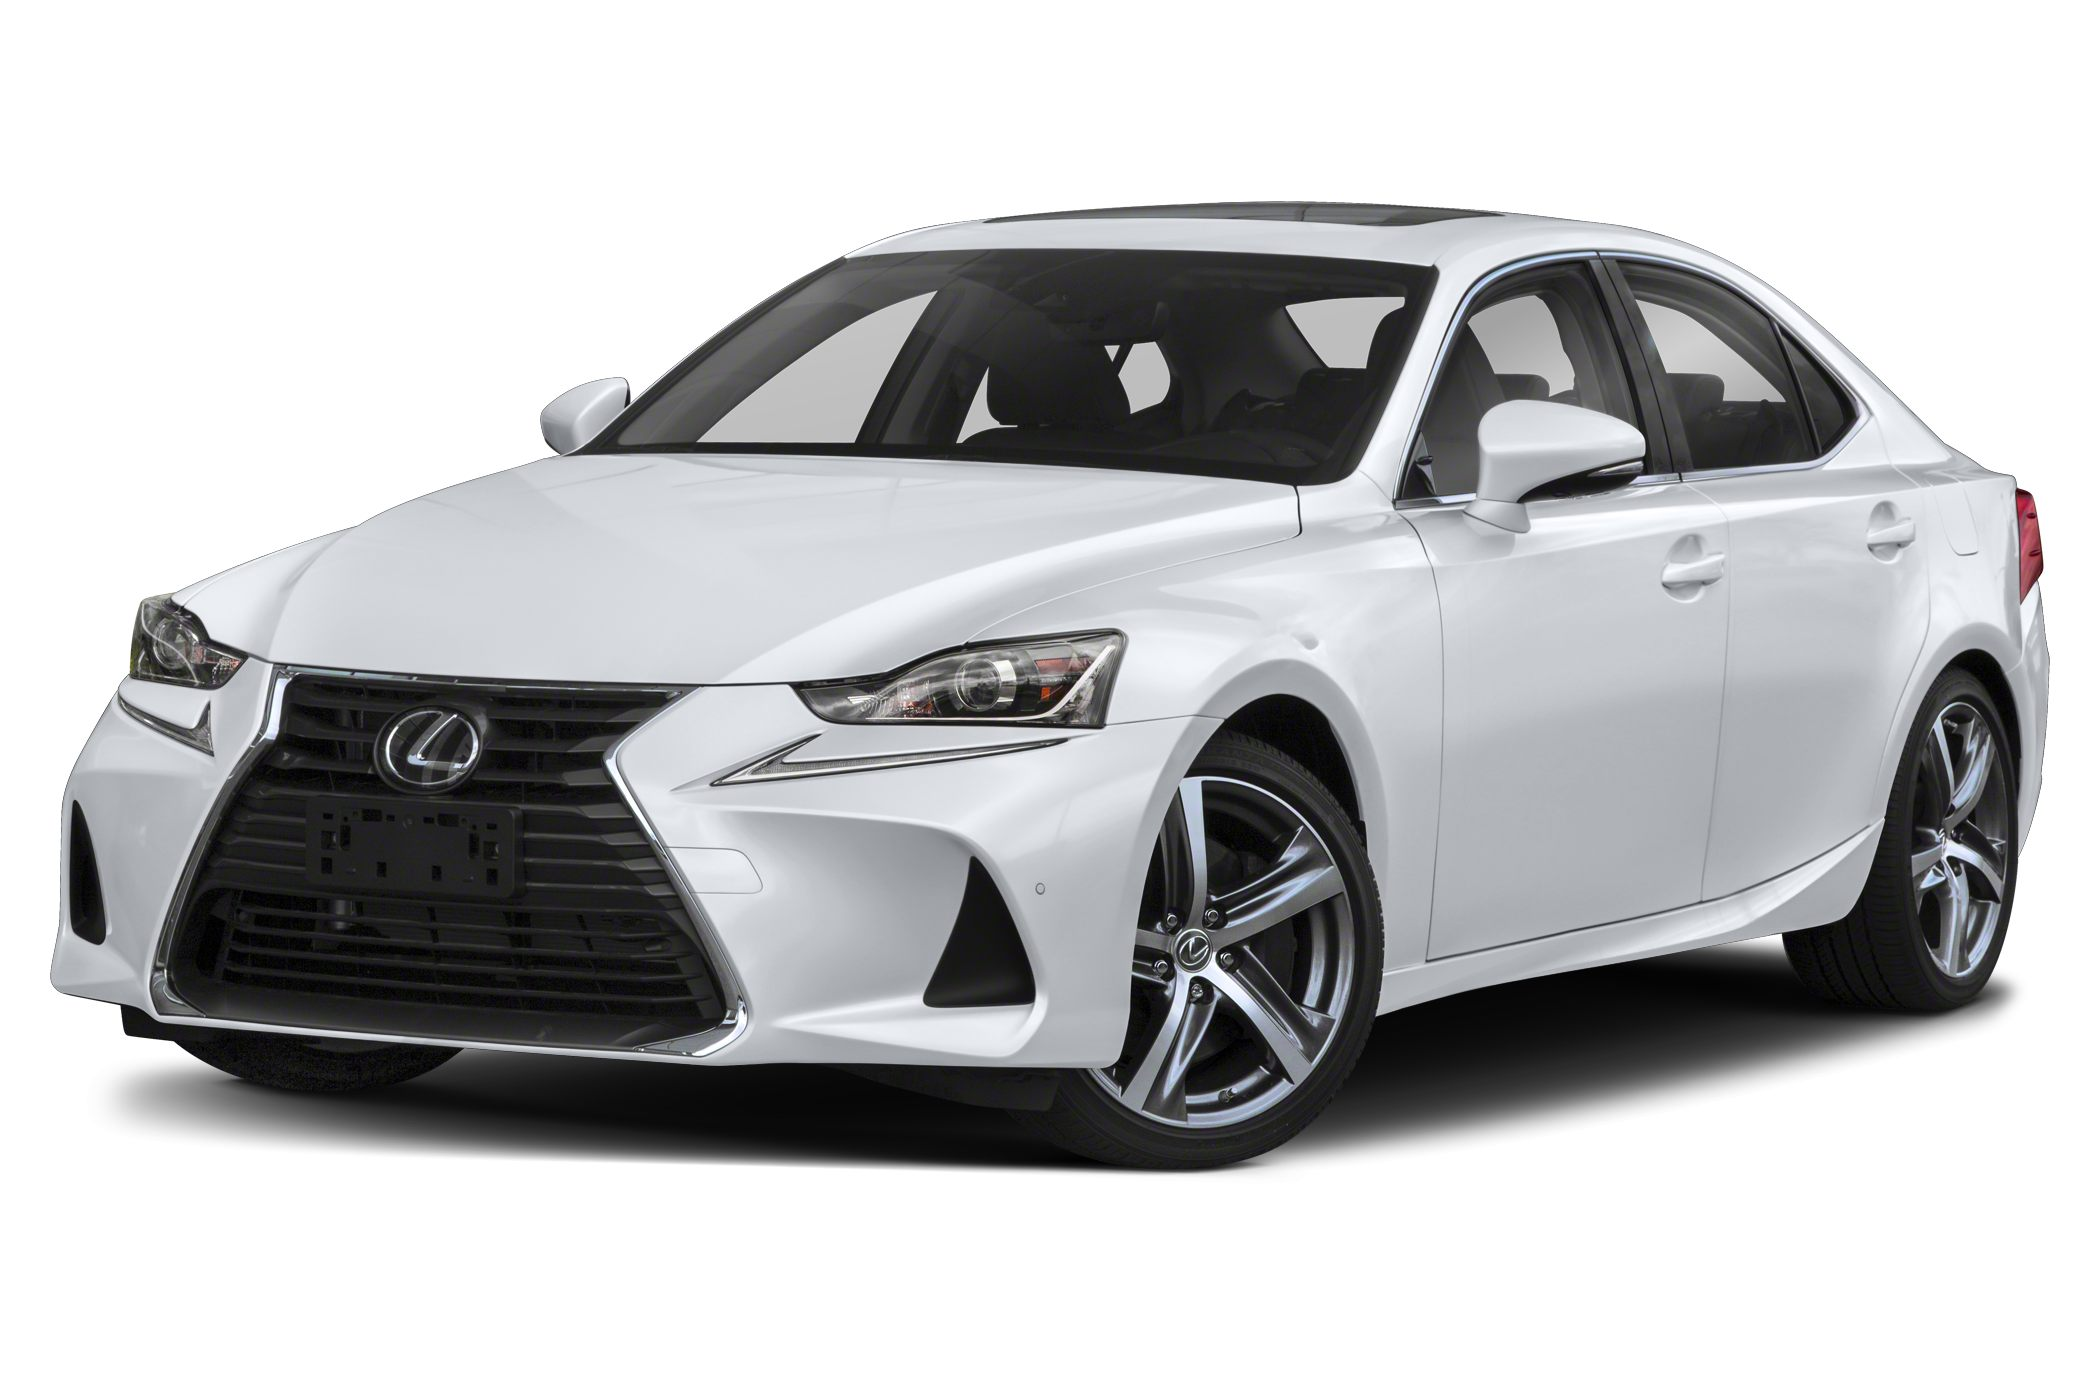 New 2020 Lexus IS 350 Price Photos Reviews Safety